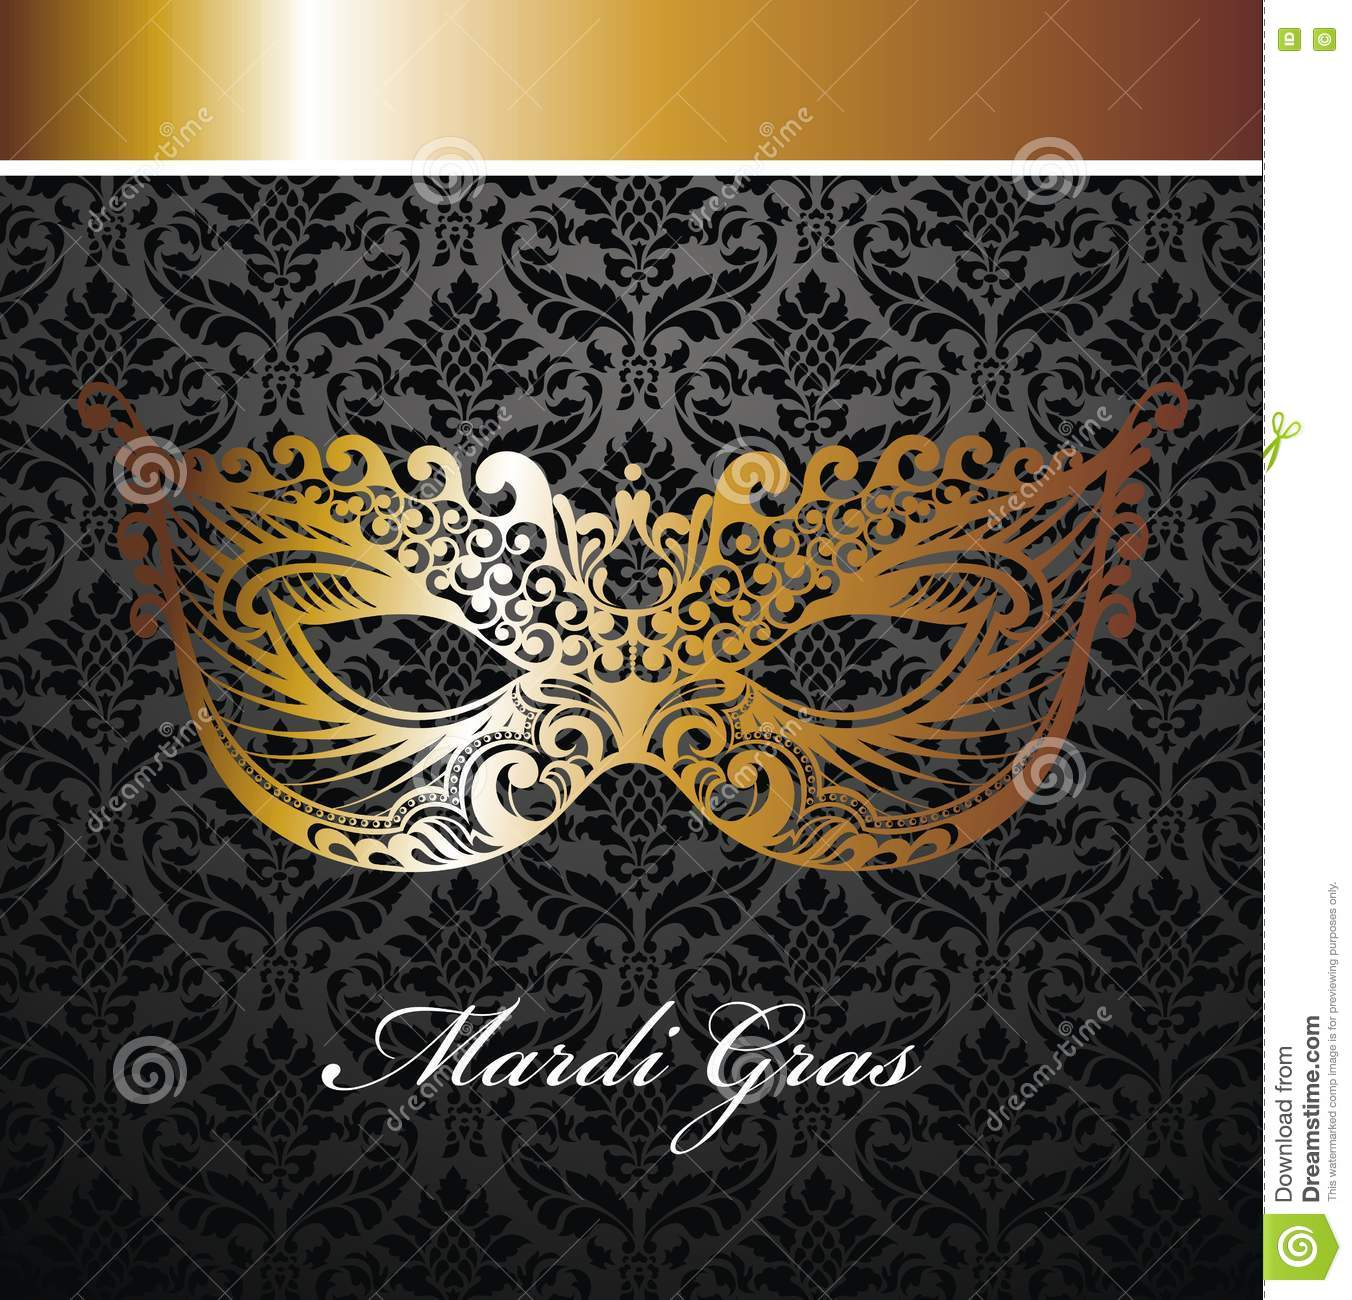 Masquerade Ball Poster Stock Vector Illustration Of Luxury